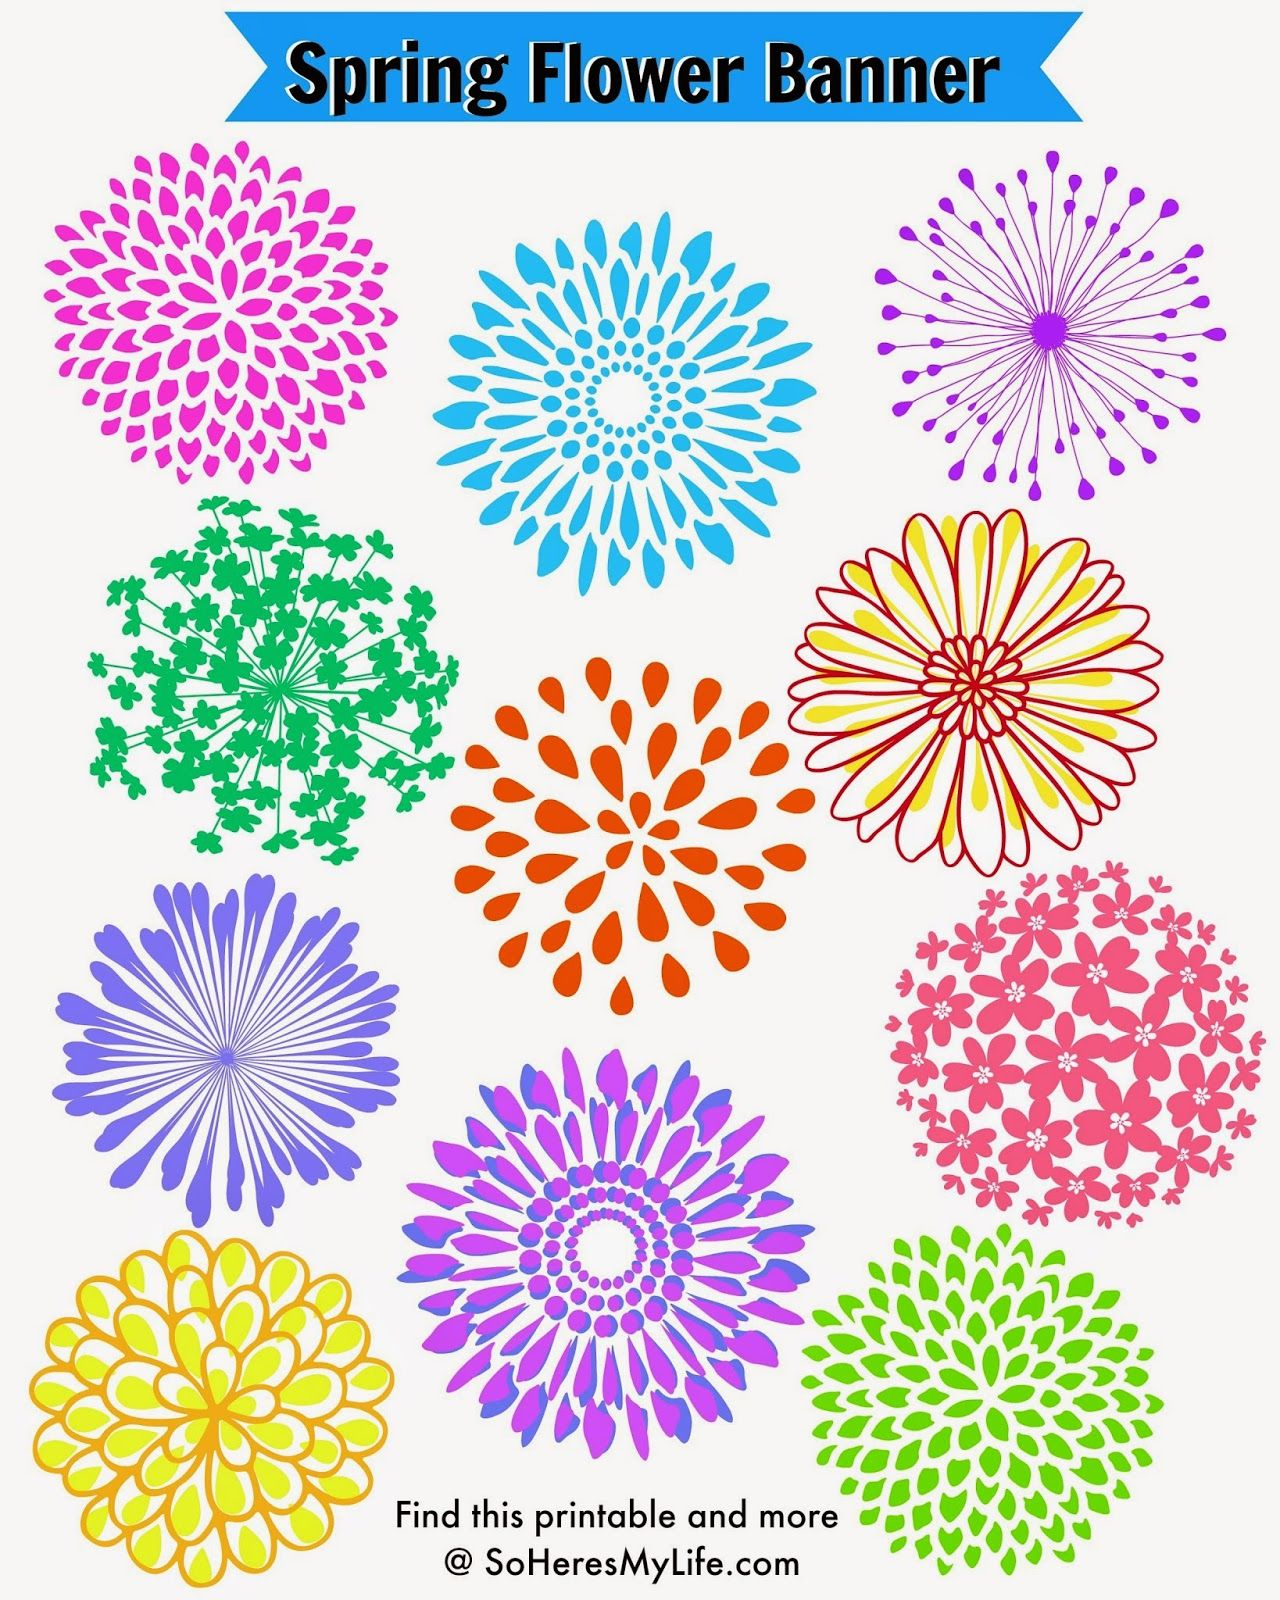 heres the perfect way to celebrate springs arrival with this free colorful printable spring flower banner print out these flowers to decorate with or